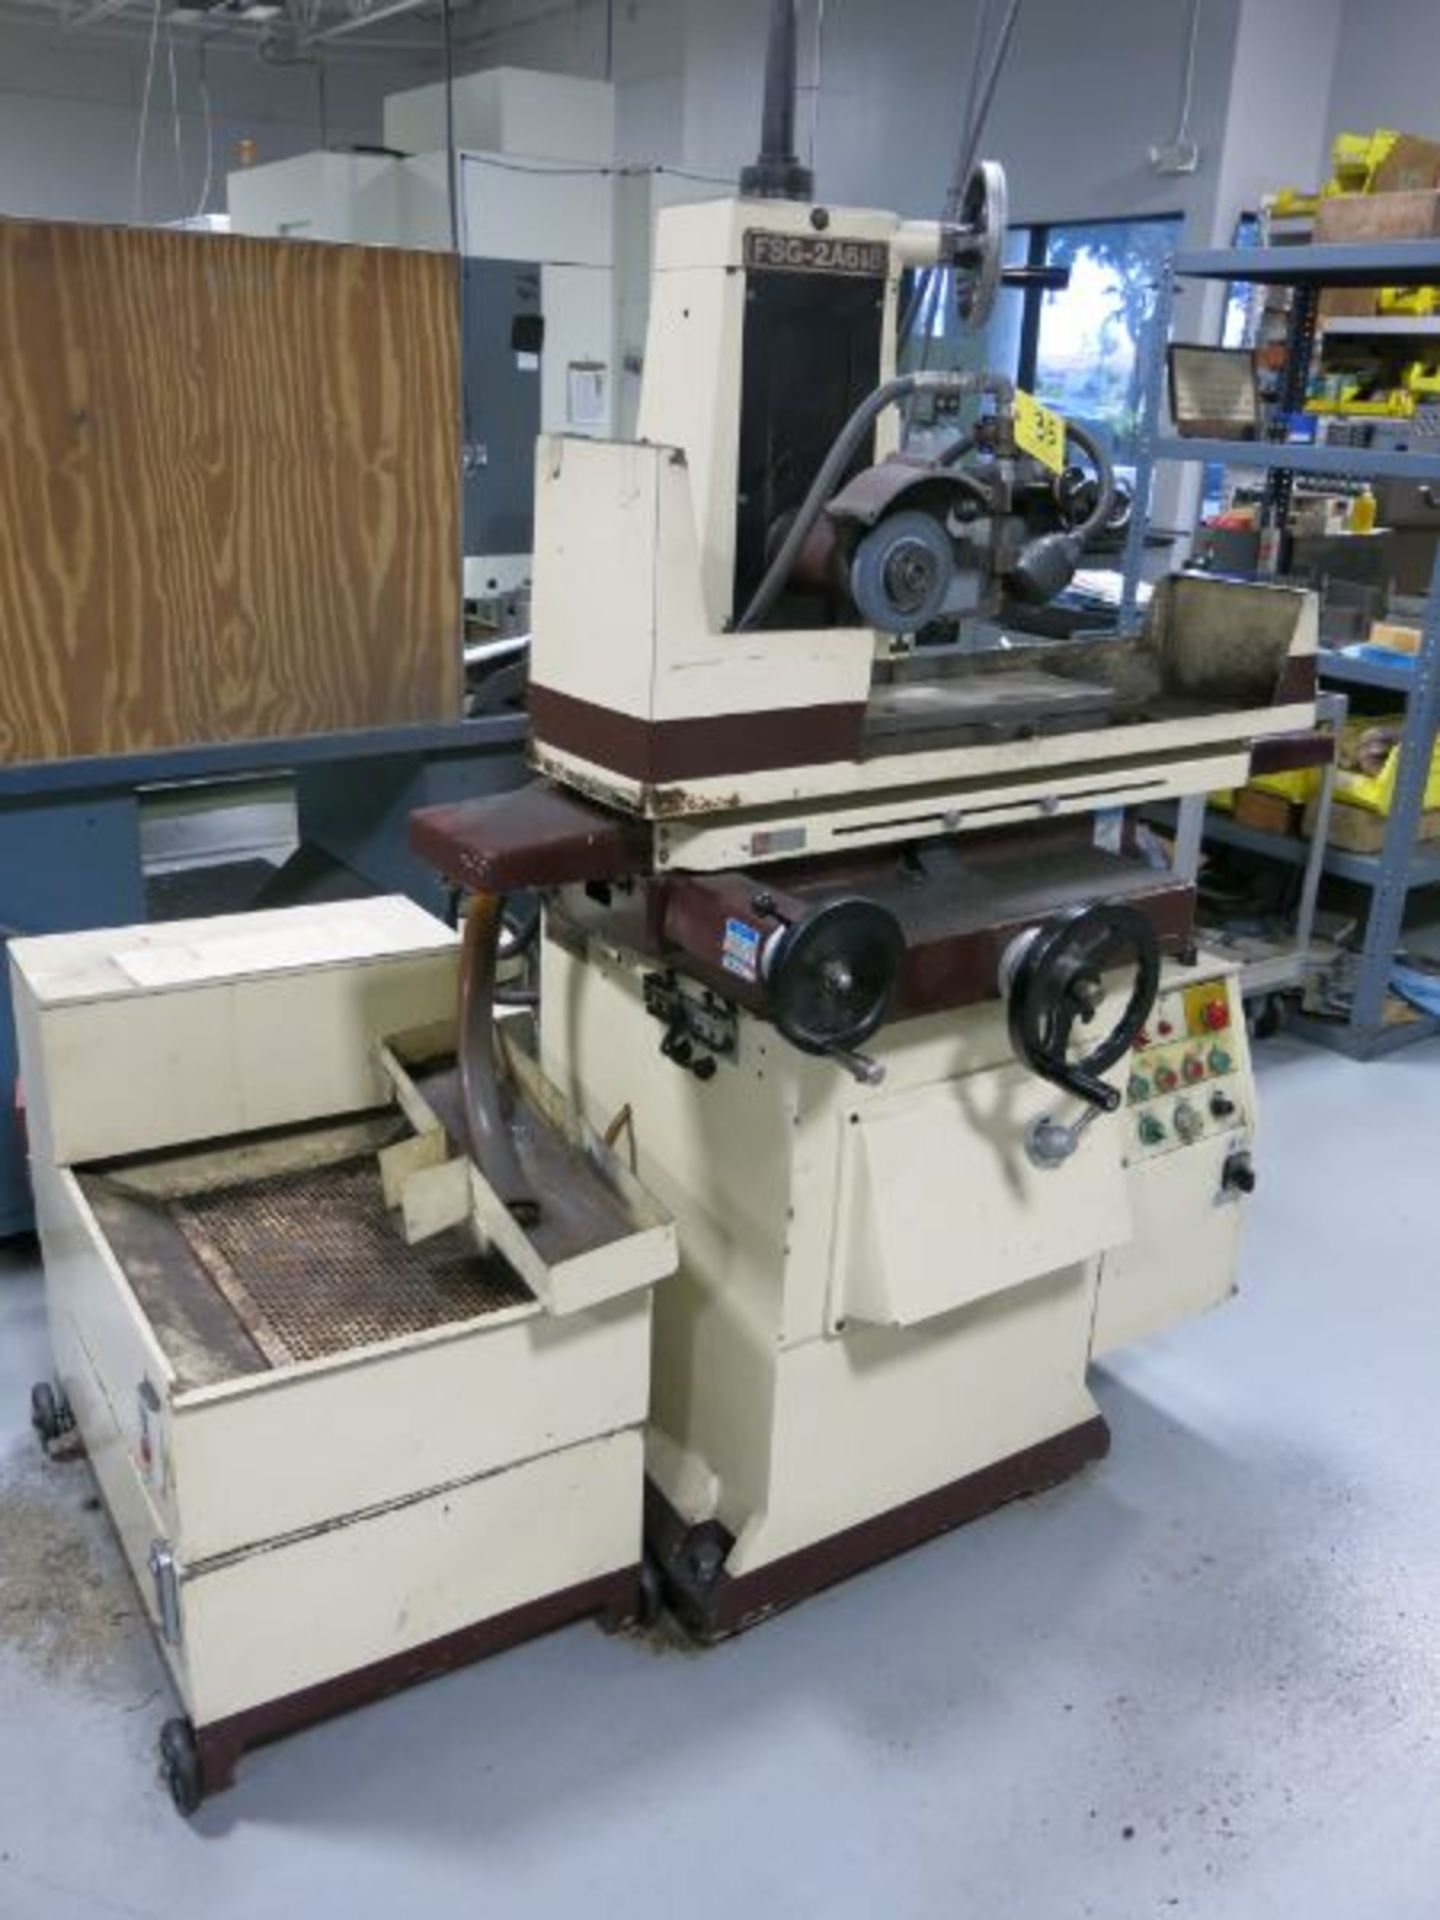 1998 Chevalier/Falcon Surface Grinder - Image 2 of 4